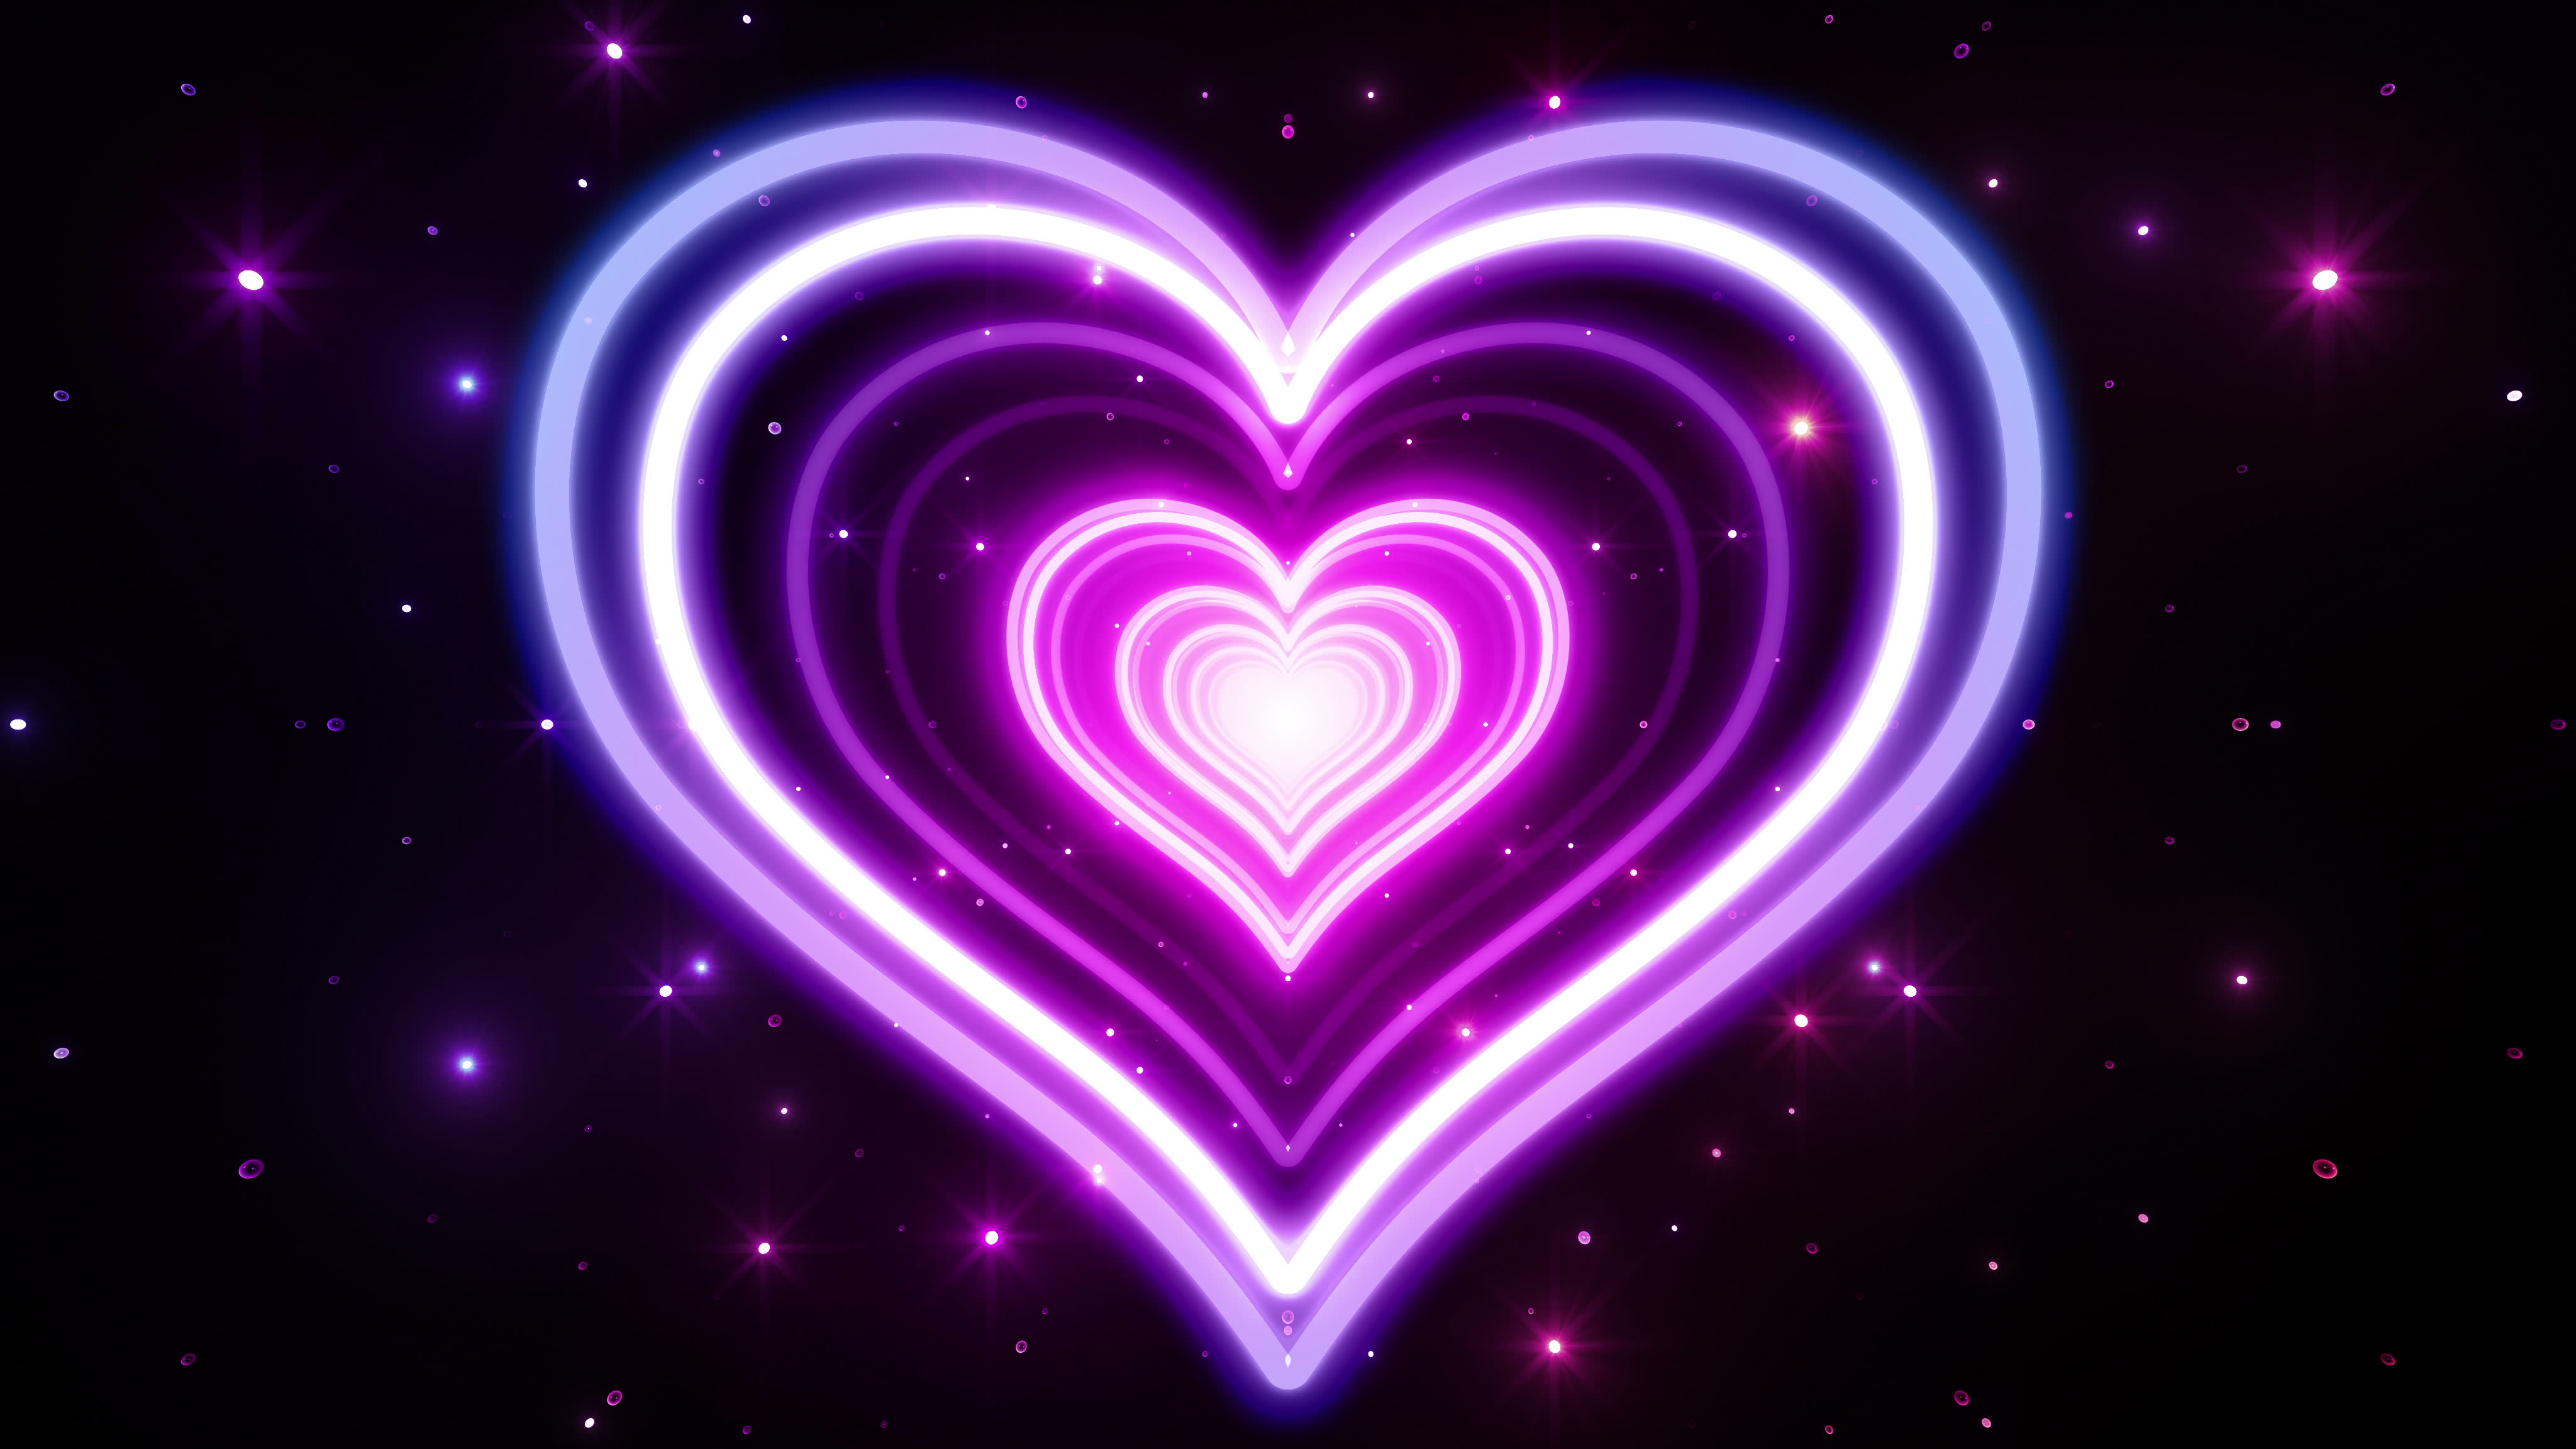 Purple Neon Heart Abstract 4k Ultra HD Wallpaper   Background Image     Wallpapers ID 694293